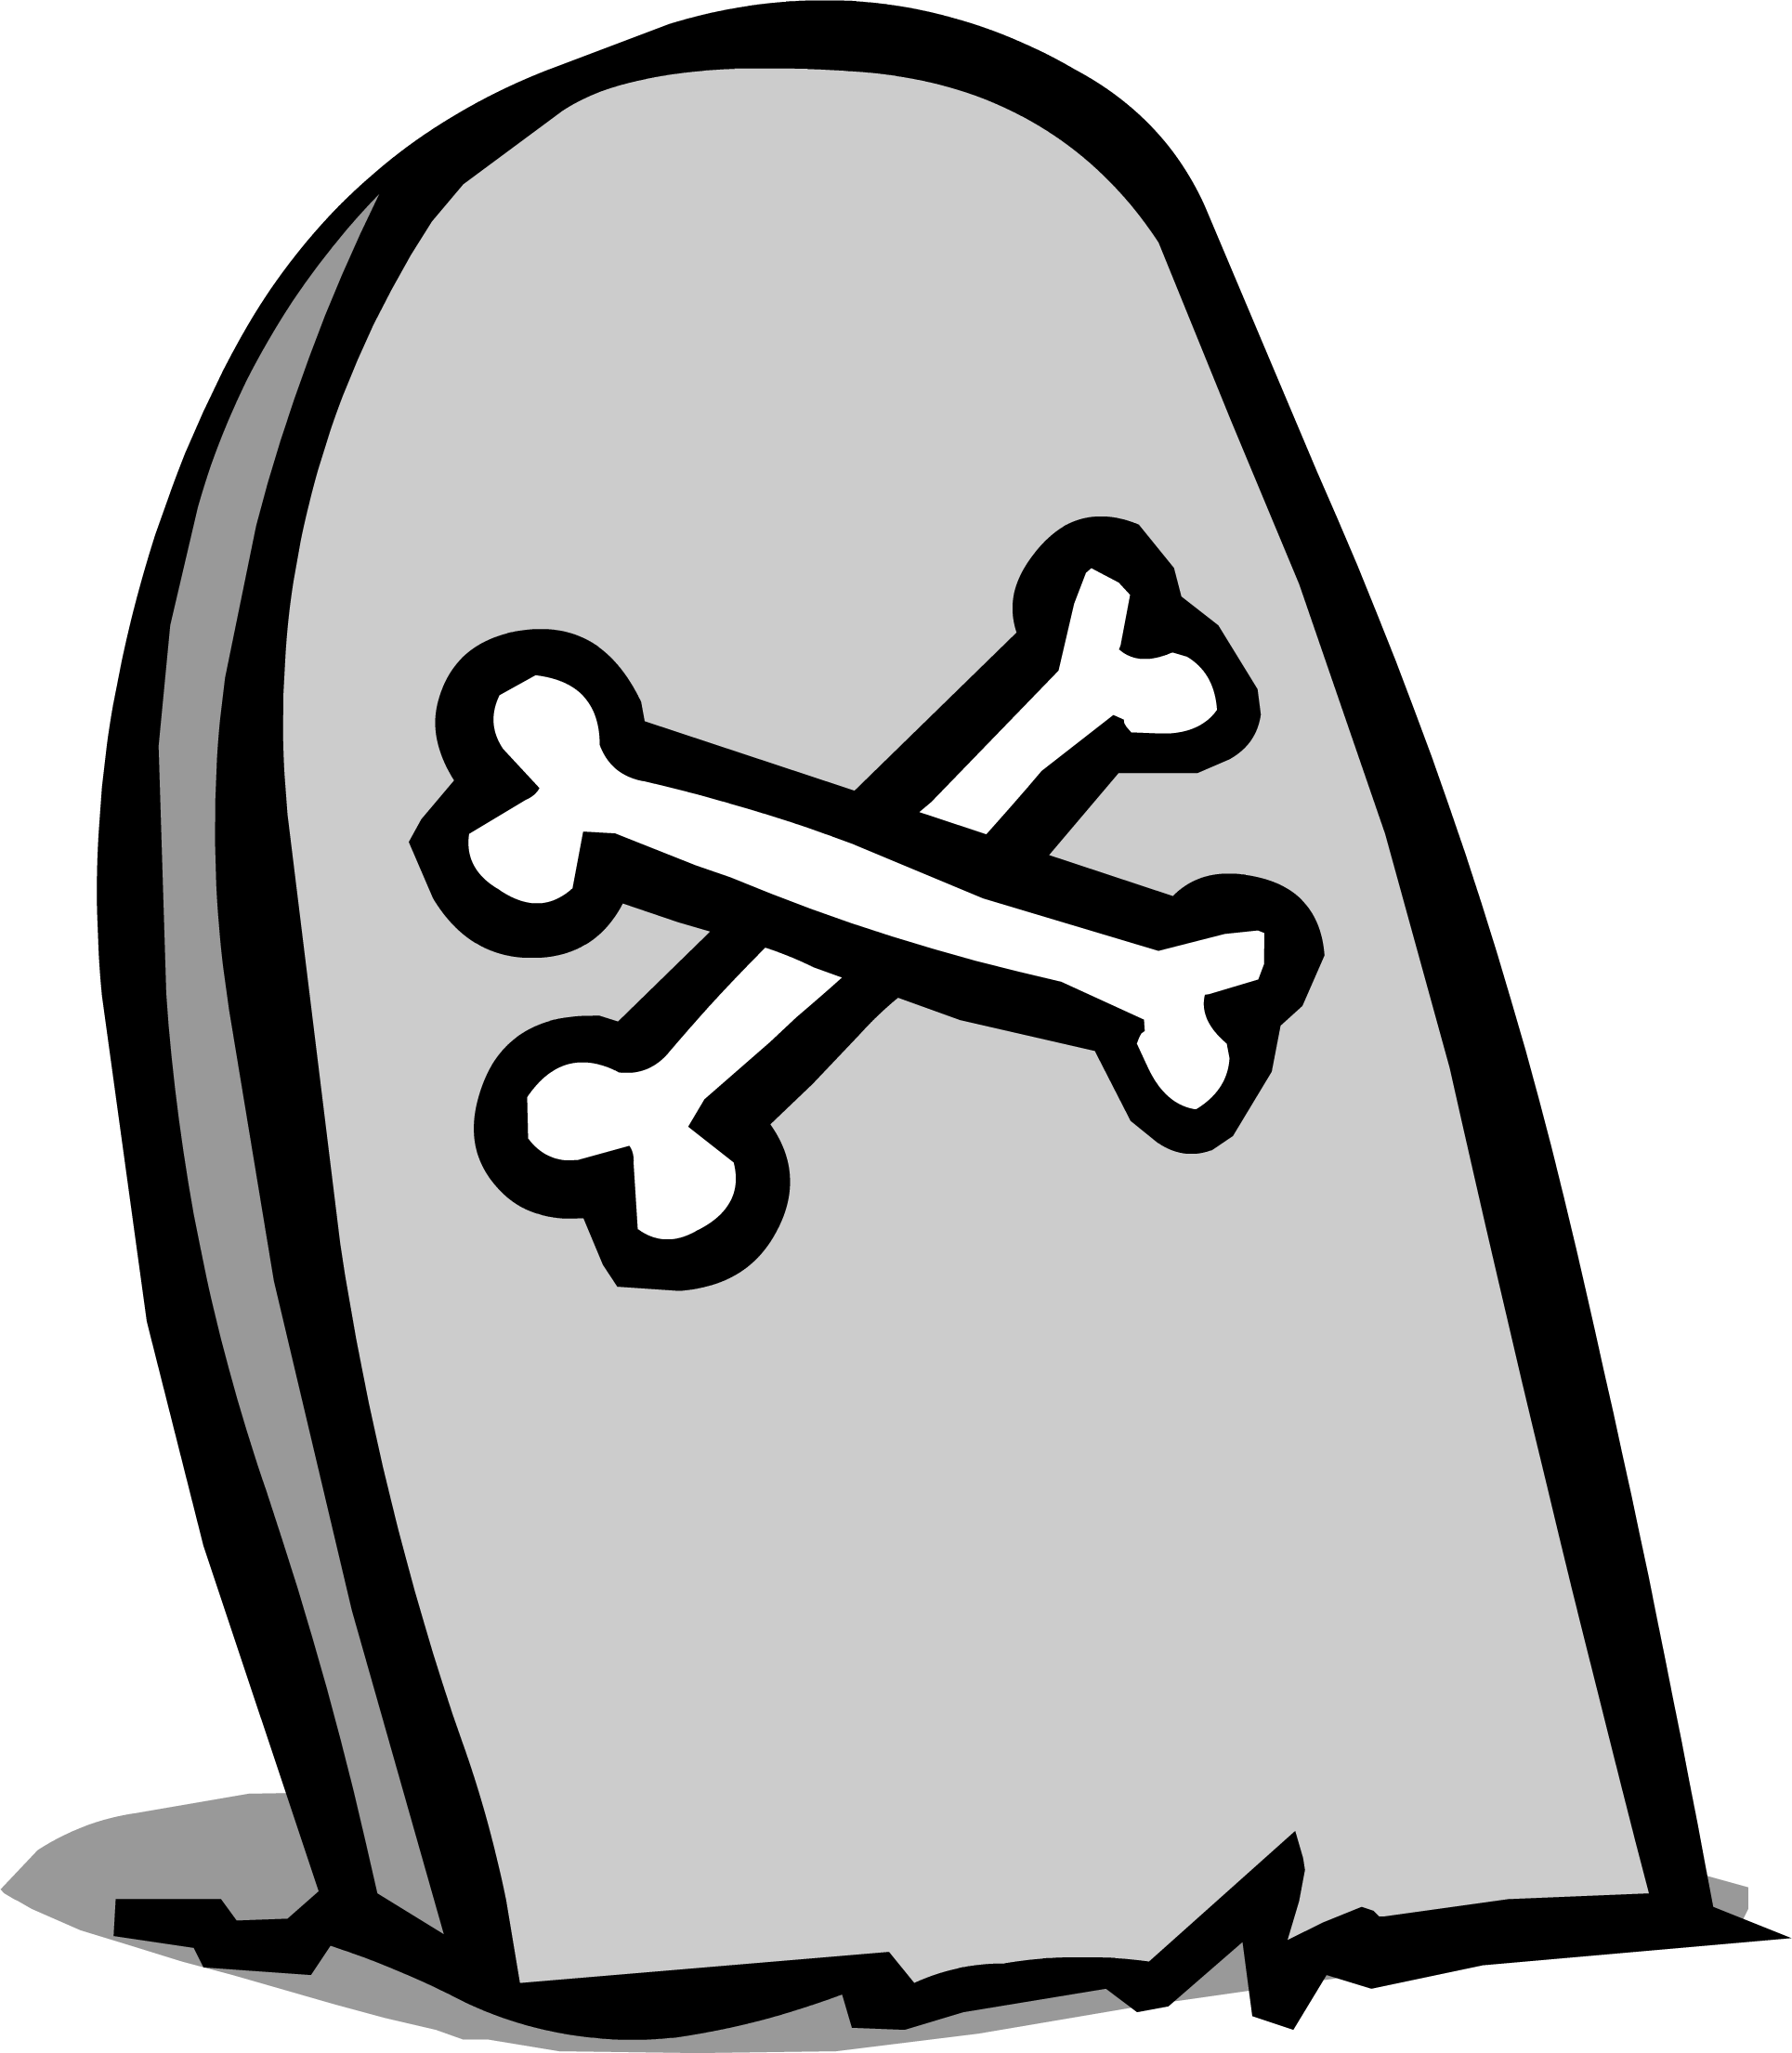 Zombie clipart tombstone. Image sprite png club